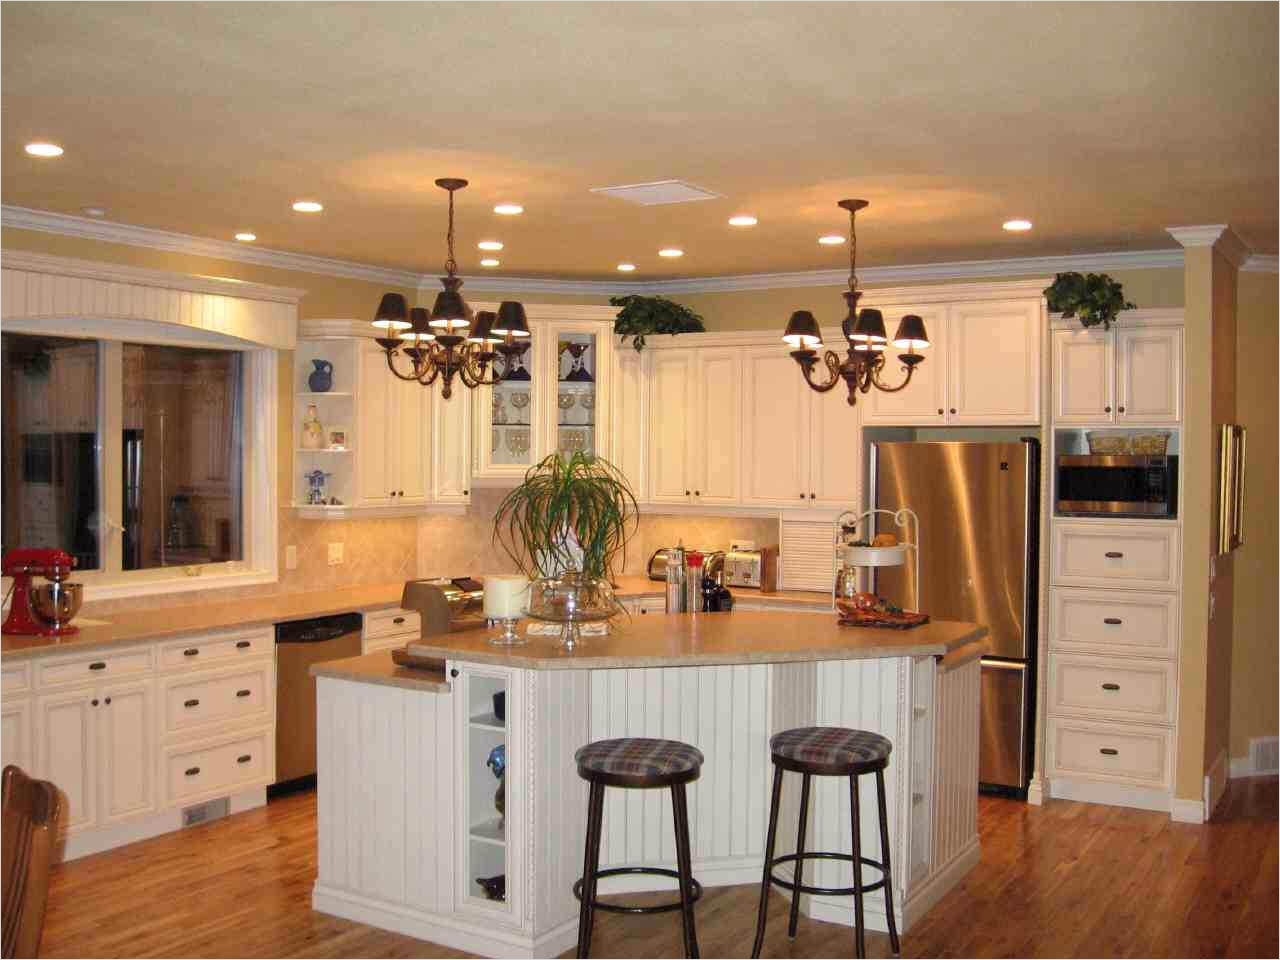 44 Perfect Ideas Small Kitchen Designs with islands 17 Remodeling Small Kitchen island and Stools Pictures 03 1